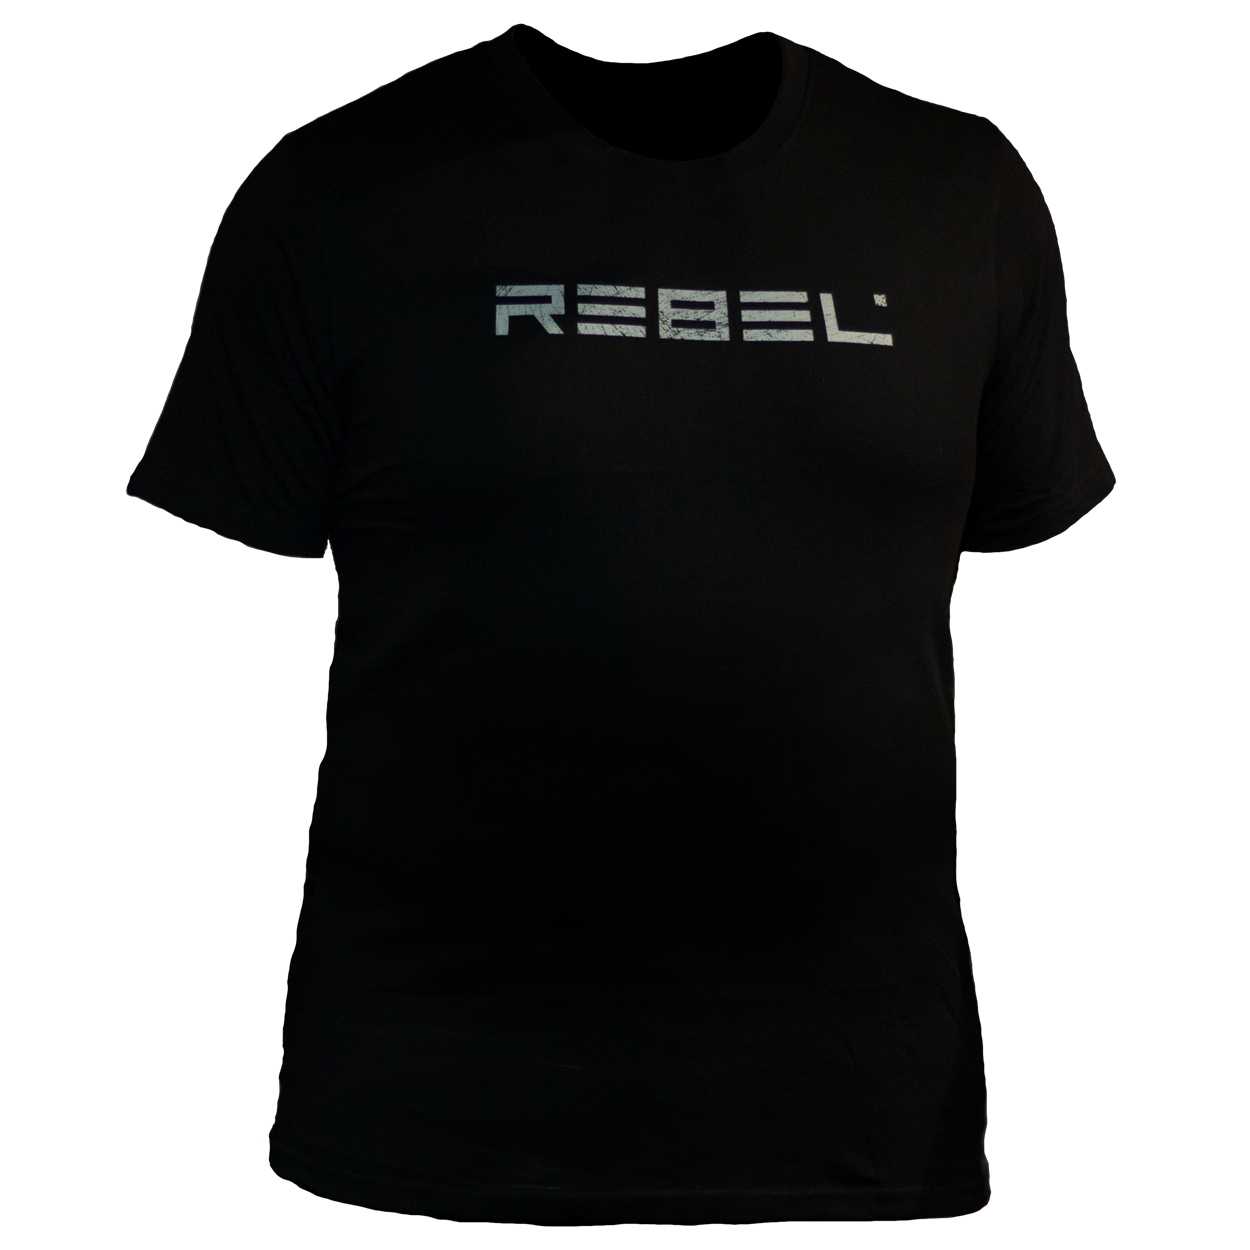 T-Shirt - Grunge design - Professional Tattoo Gear - REBEL